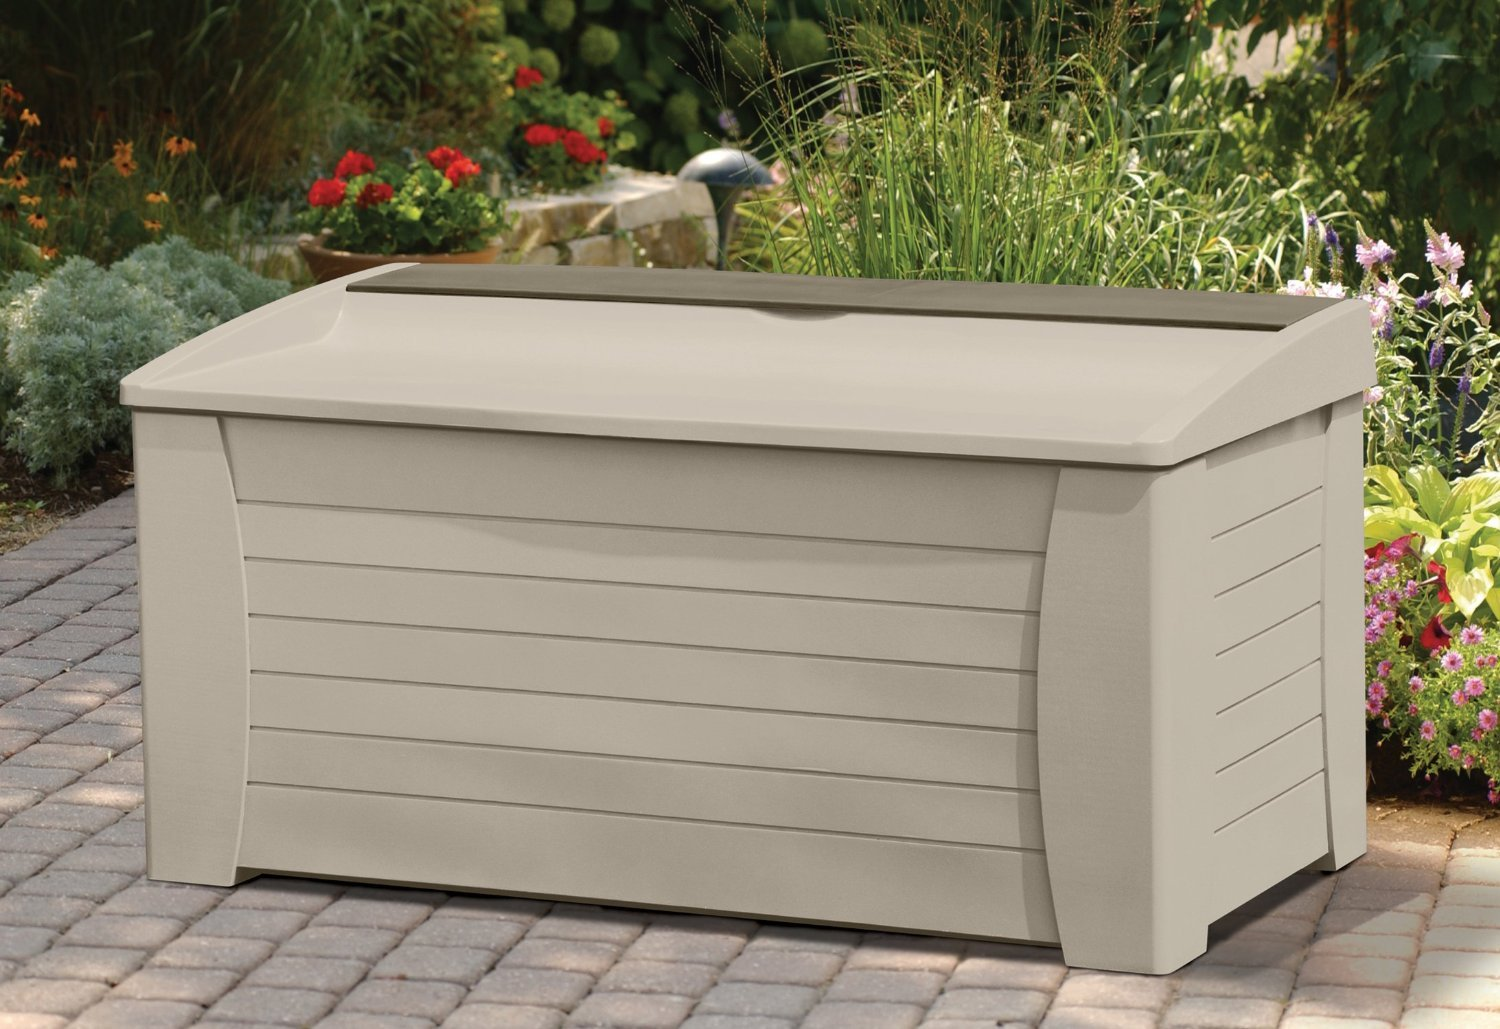 Gorgeous Water Weather Resistant Solid Resin Plastic Indoor Outdoor 127-Gallon Storage Deck Box- Beautiful Earthtone Light Taupe Color Lightweight Portable Durable- Seats Three Deep Storage Bin Tray by Sun Burst